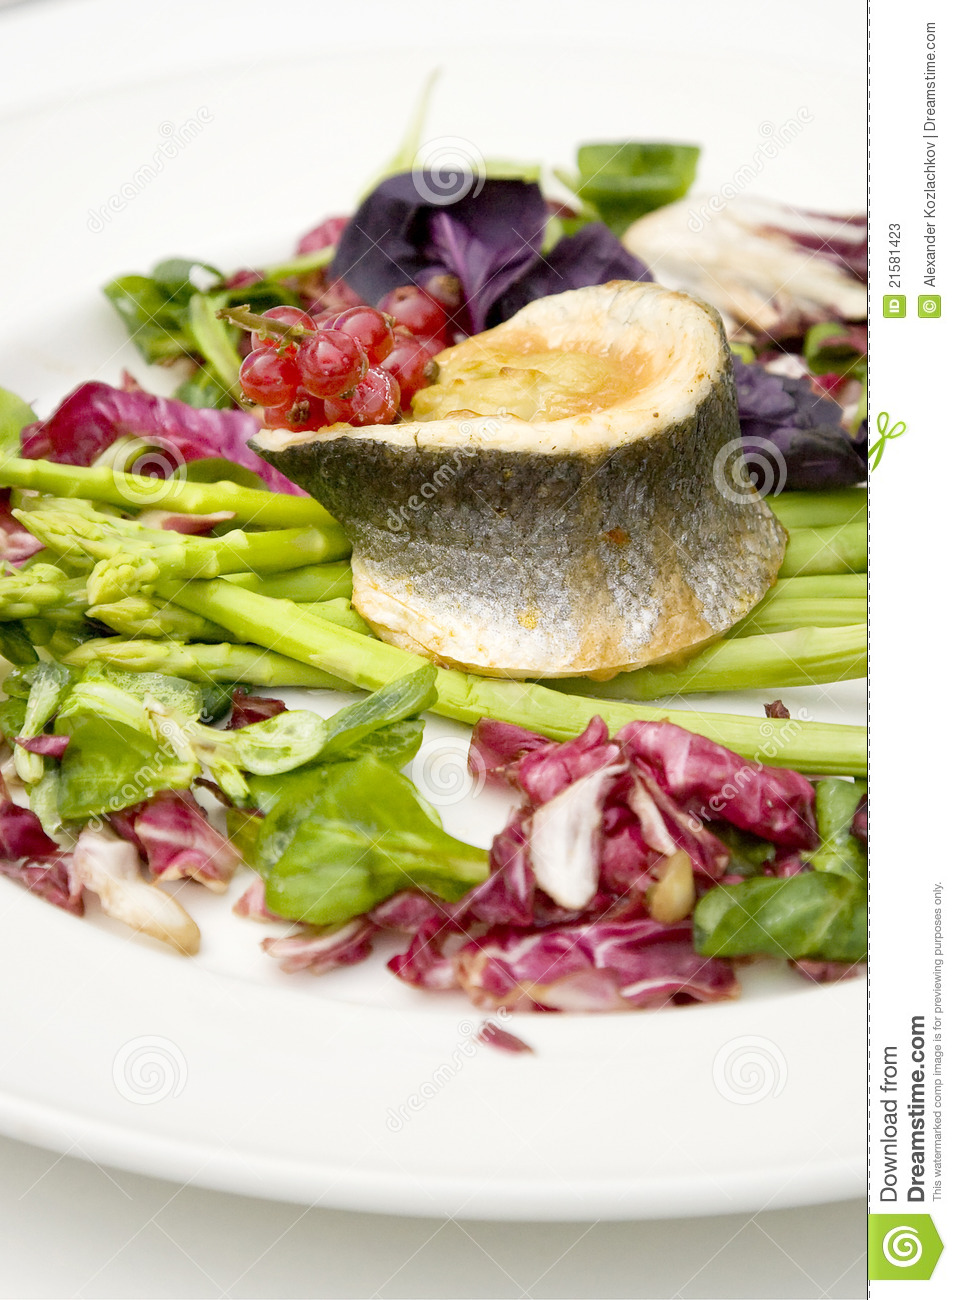 Fish and asparagus stock photos image 21581423 for Fish and asparagus